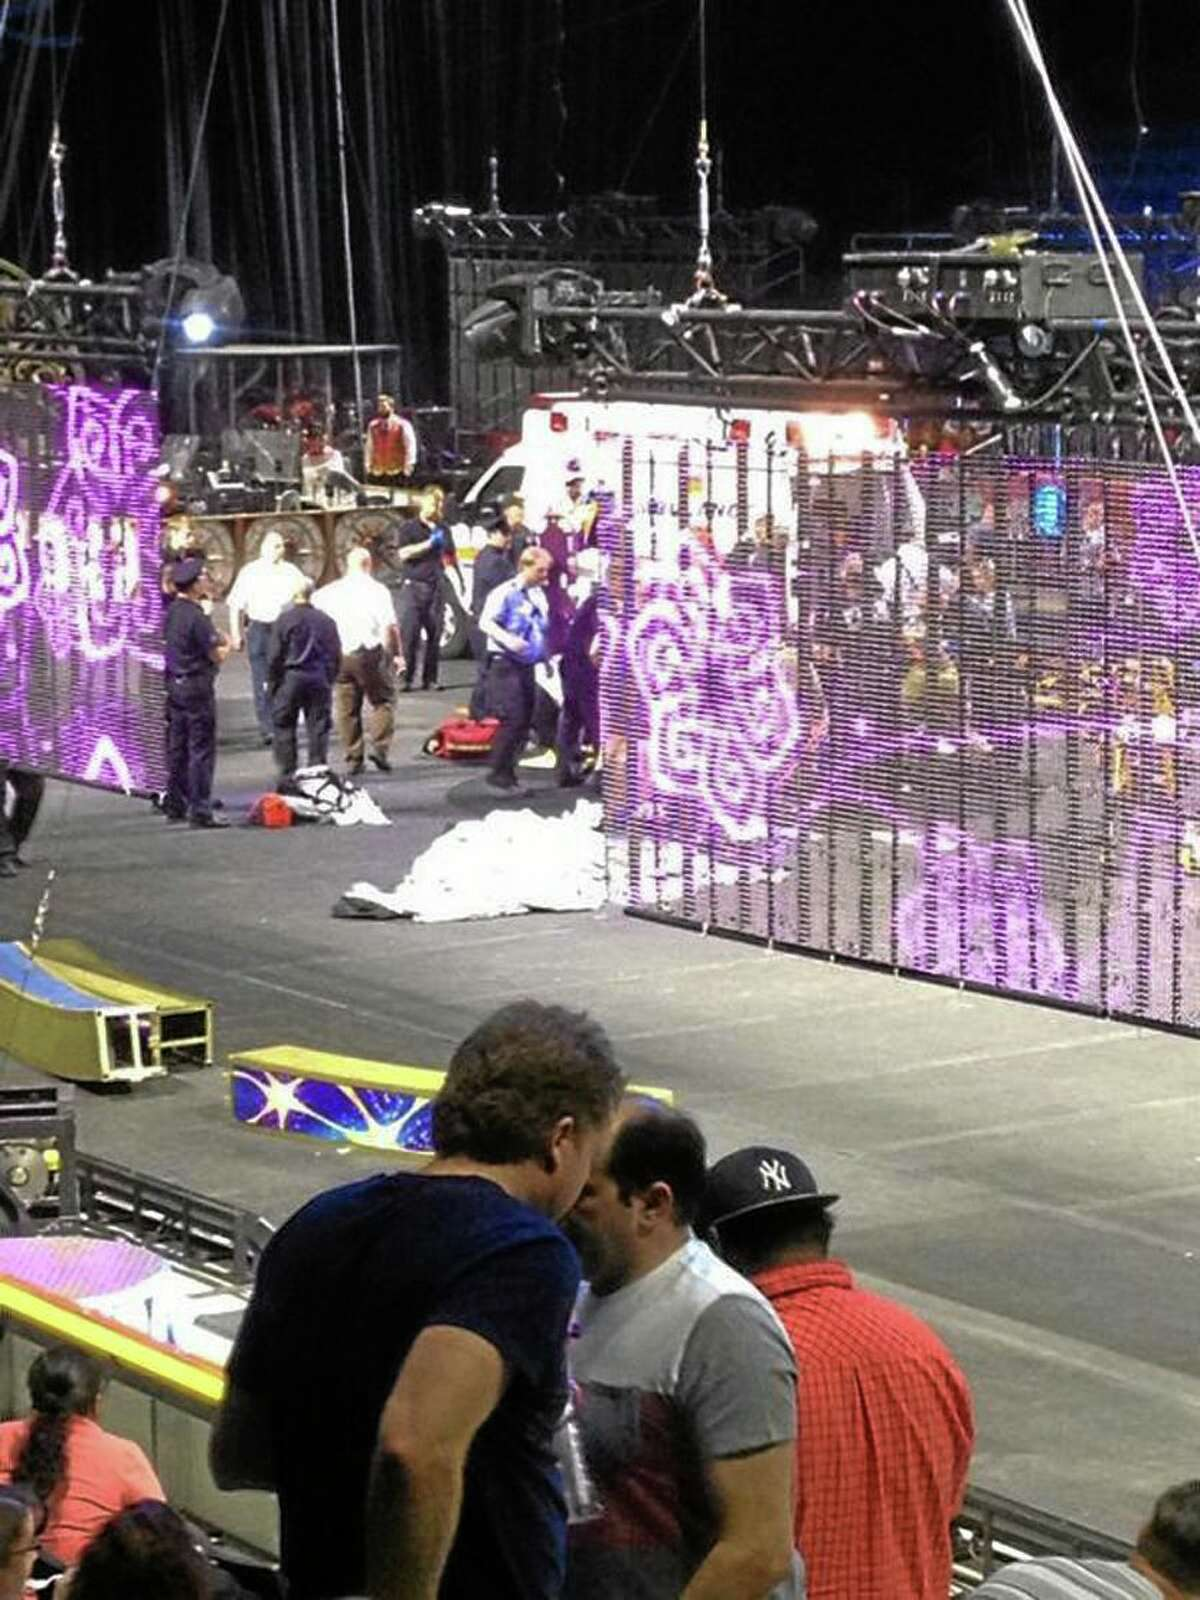 In a cellphone photo provided by Tara Griggs, emergency workers tend to injured Ringling Brothers and Barnum and Bailey Circus performers Sunday after a platform collapsed in Providence, R.I.